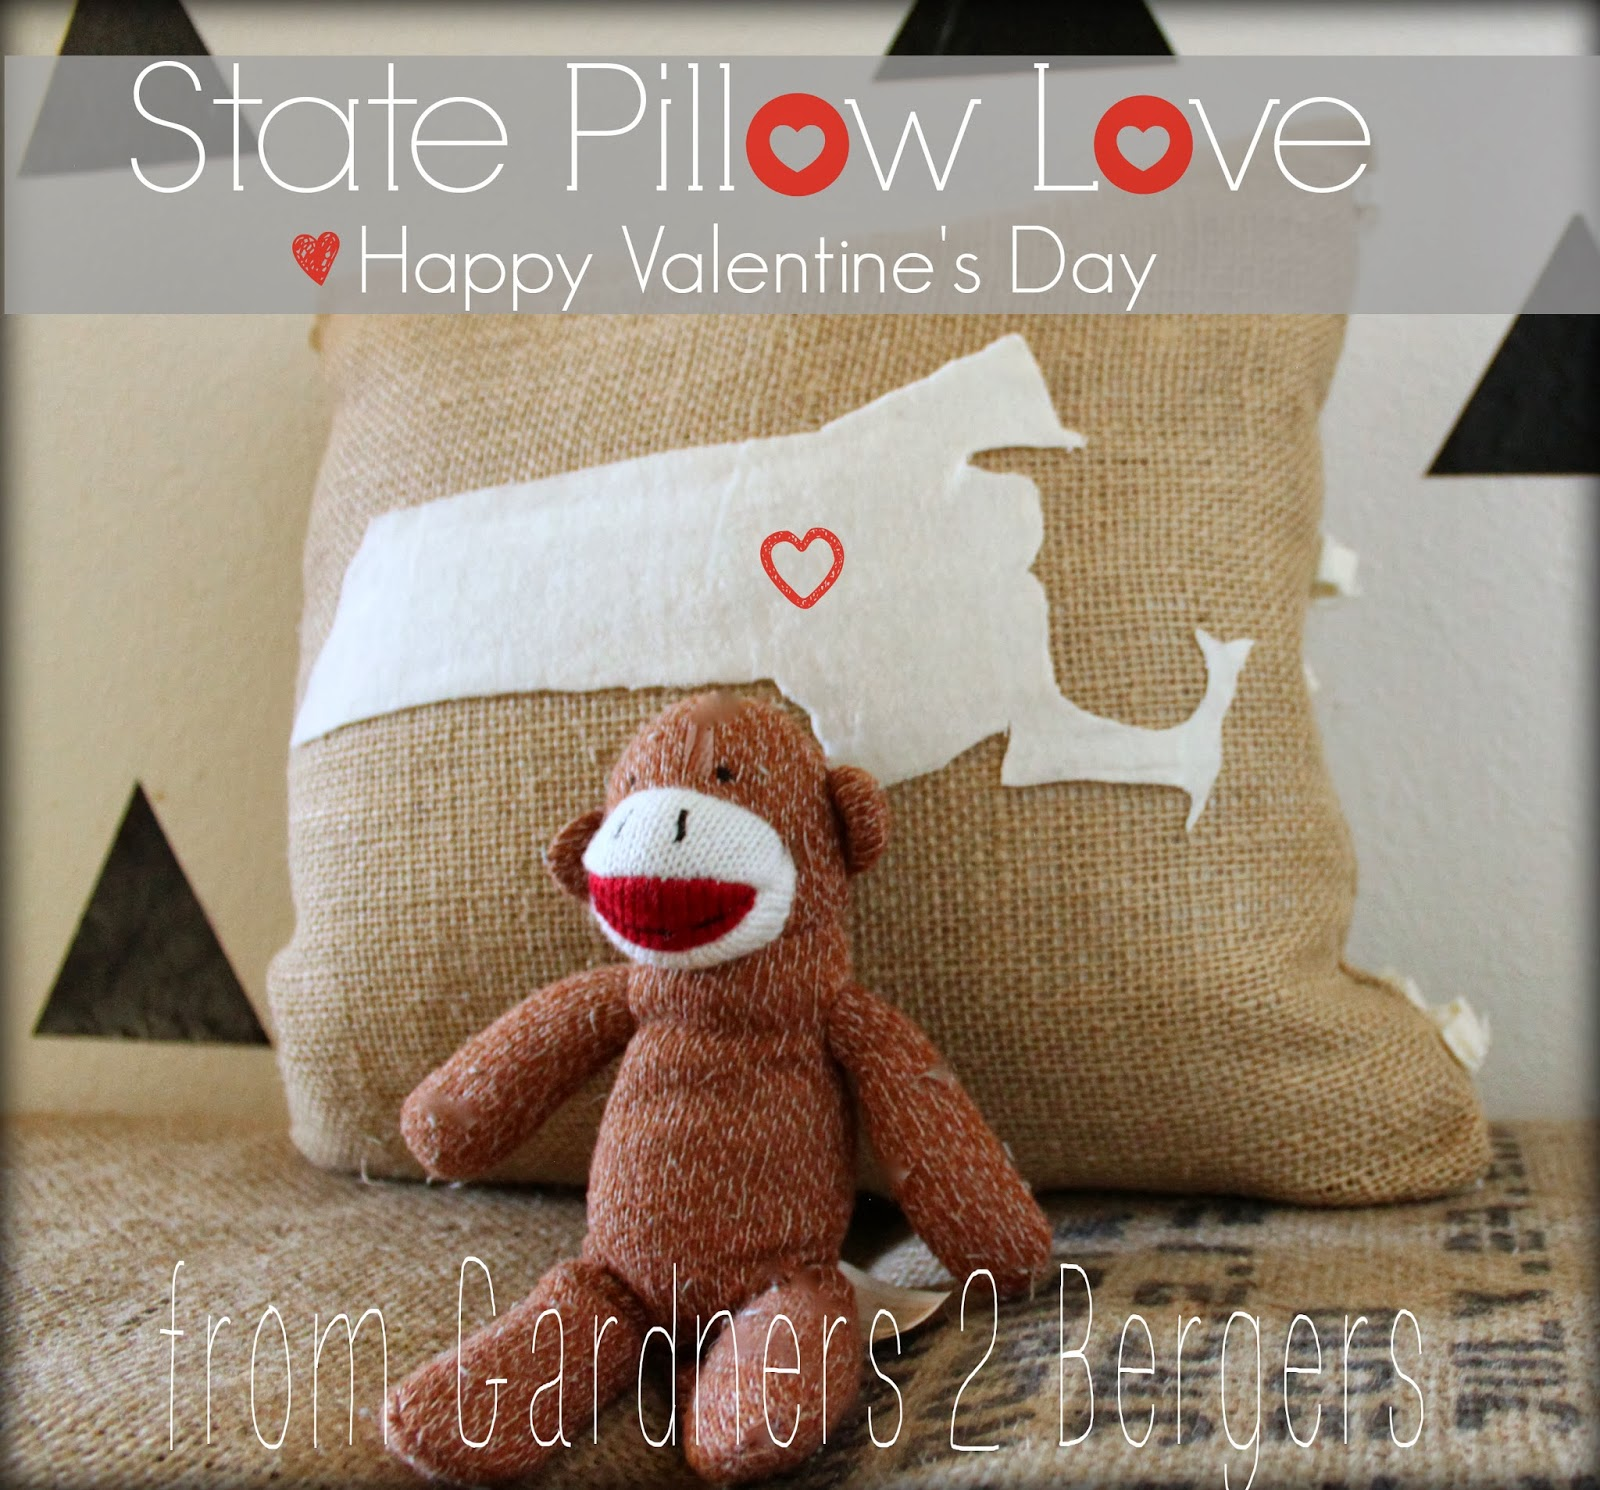 #pillow #statelove #massachusetts